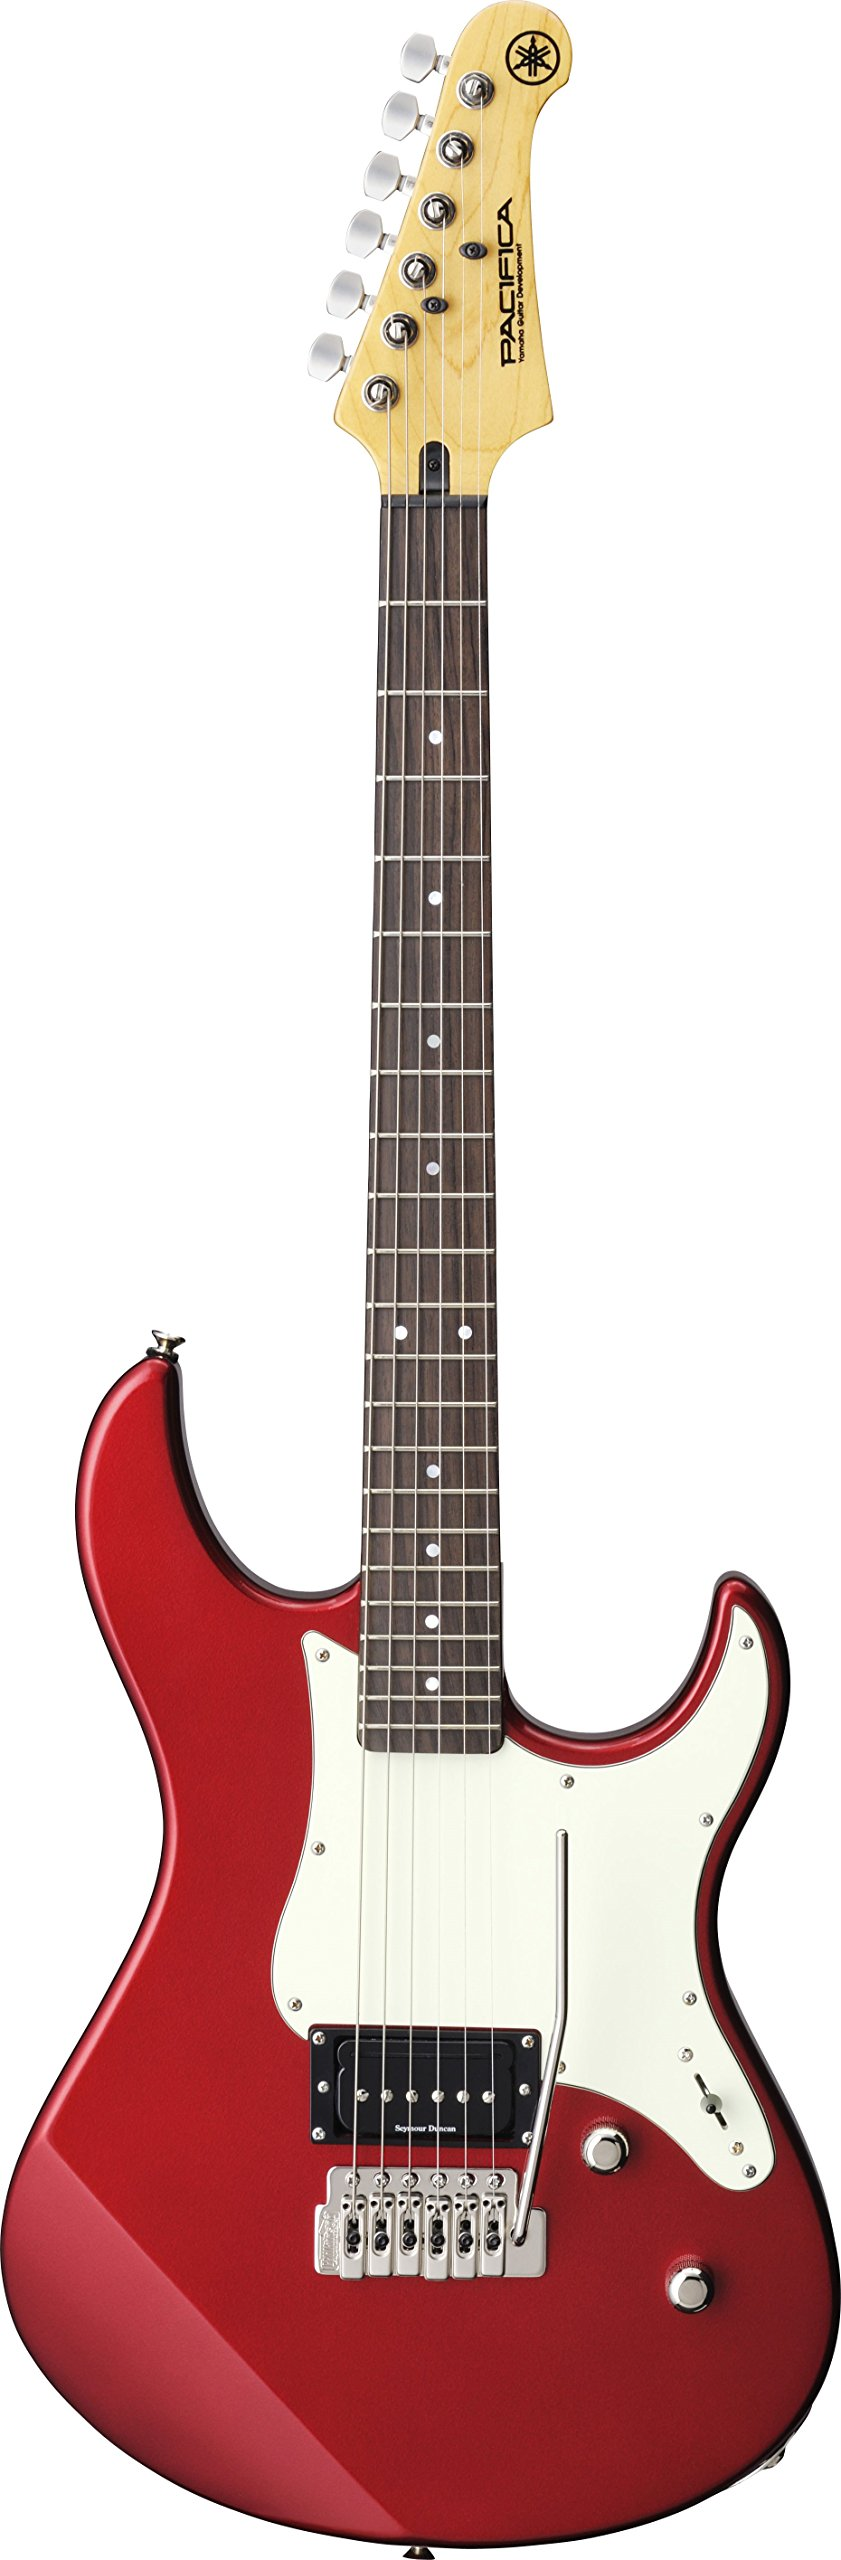 Yamaha PAC510V Electric guitar Solid 6strings Red, Rosewood, White – Guitars (6 strings, 1.05 cm, Φ5.2(Screw-in))